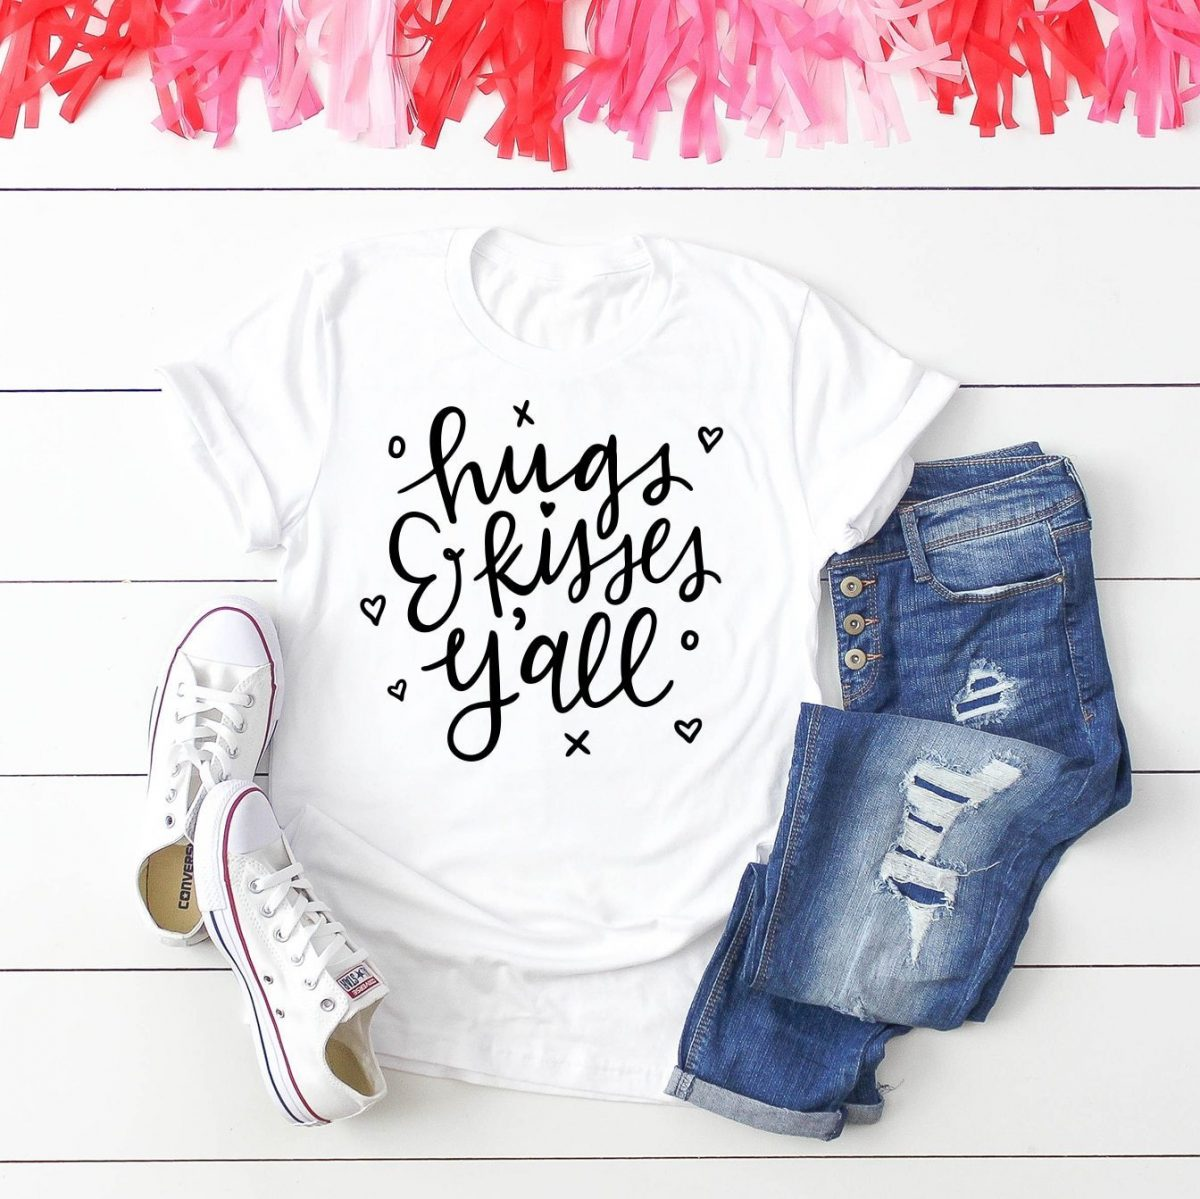 """hugs & kisses y'all"" svg file for shirts or tote bag"